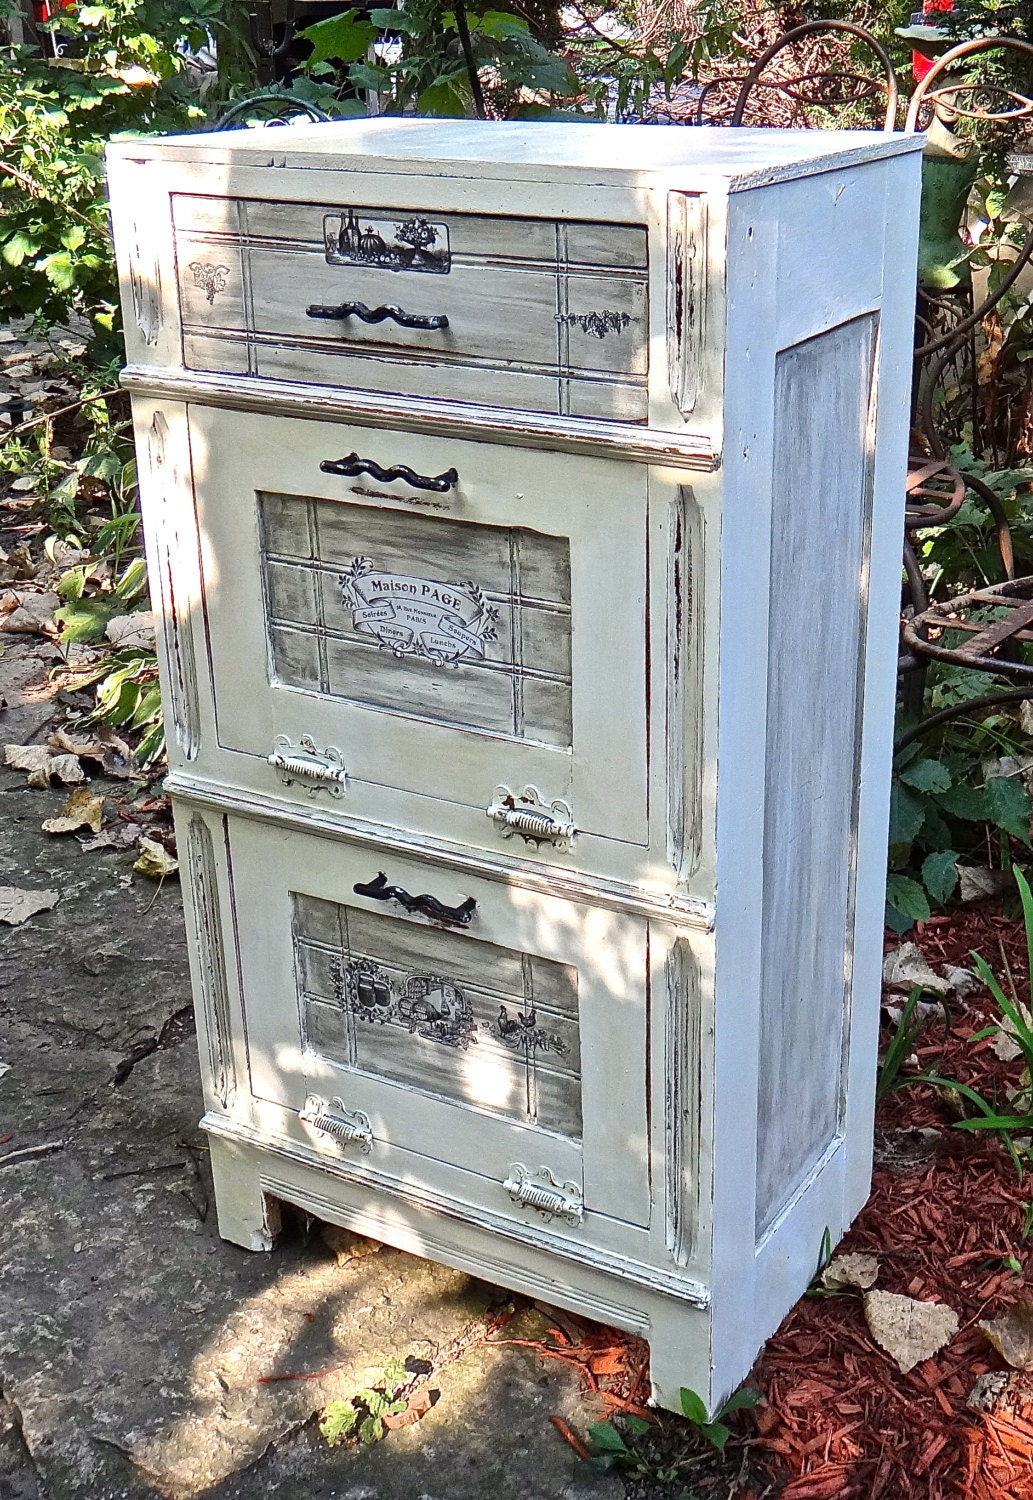 potato bin vegetable bin onion bin decoupaged furniture. Black Bedroom Furniture Sets. Home Design Ideas